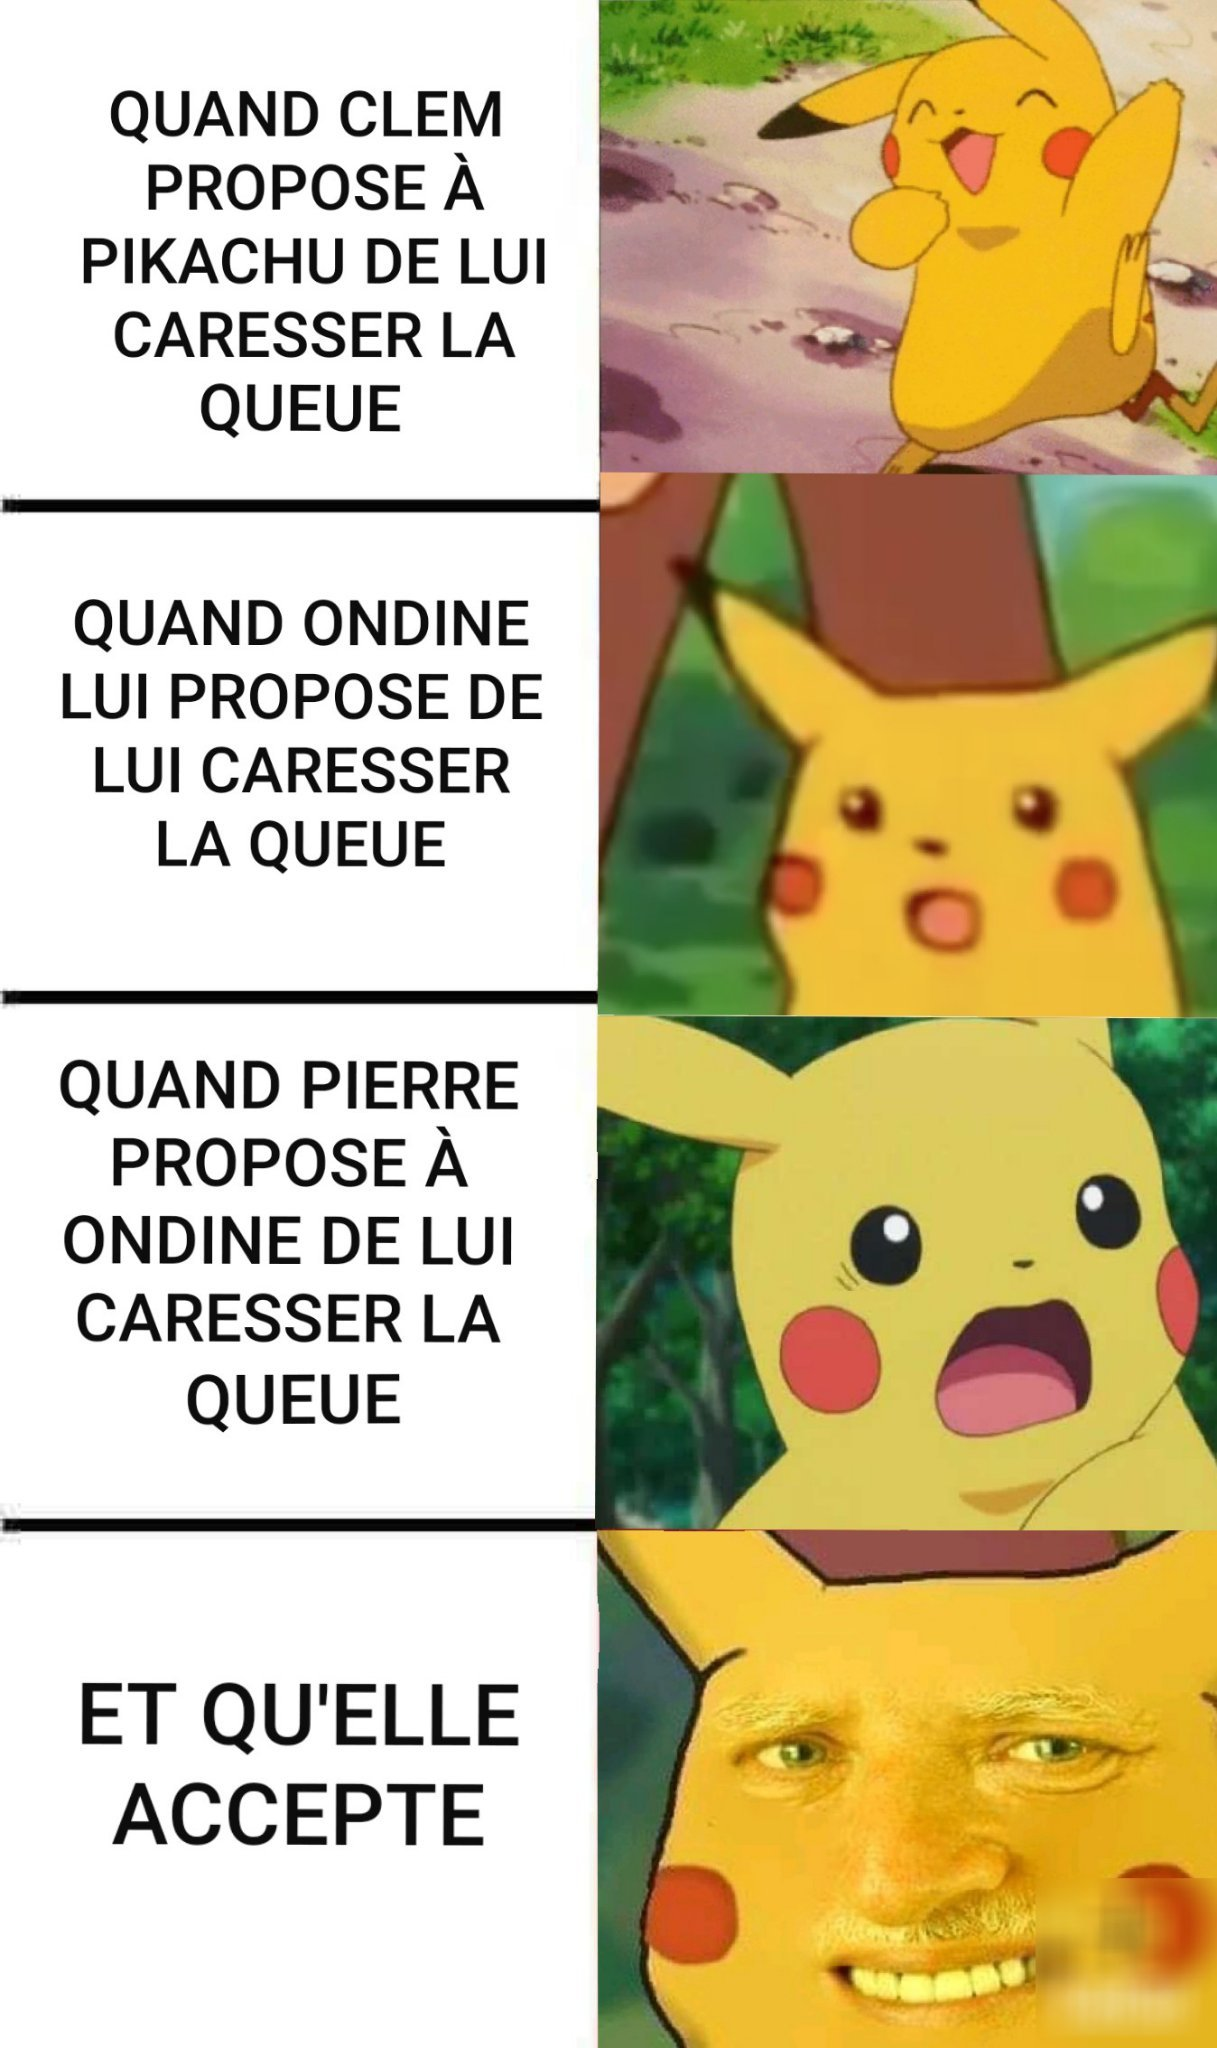 PIKACHU LE QUEUE-TARD (queutard) - meme